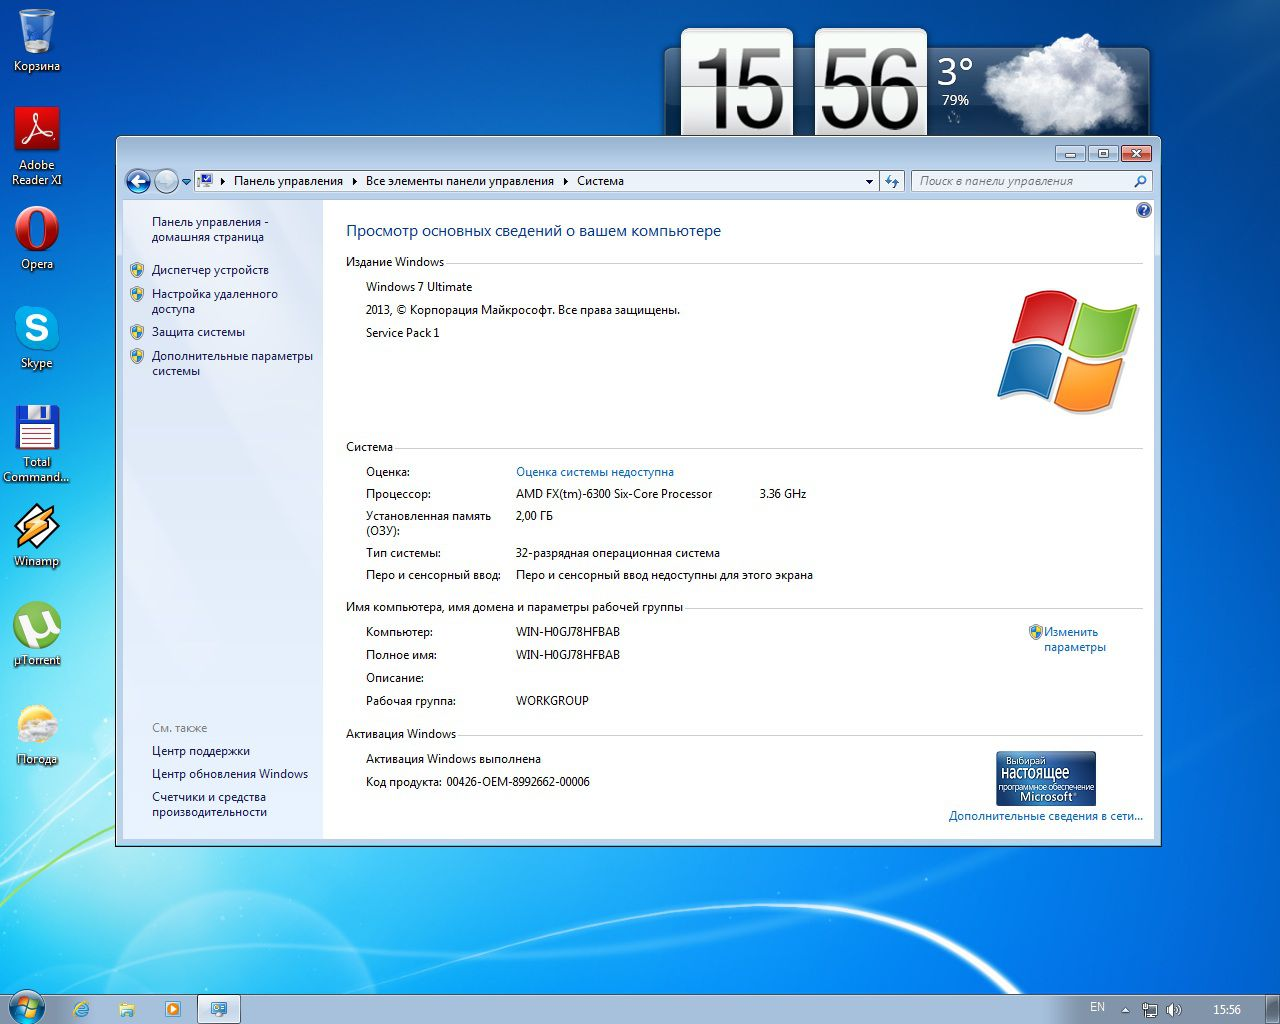 Download Intel Drivers Windows 7 Ultimate 64 Bit